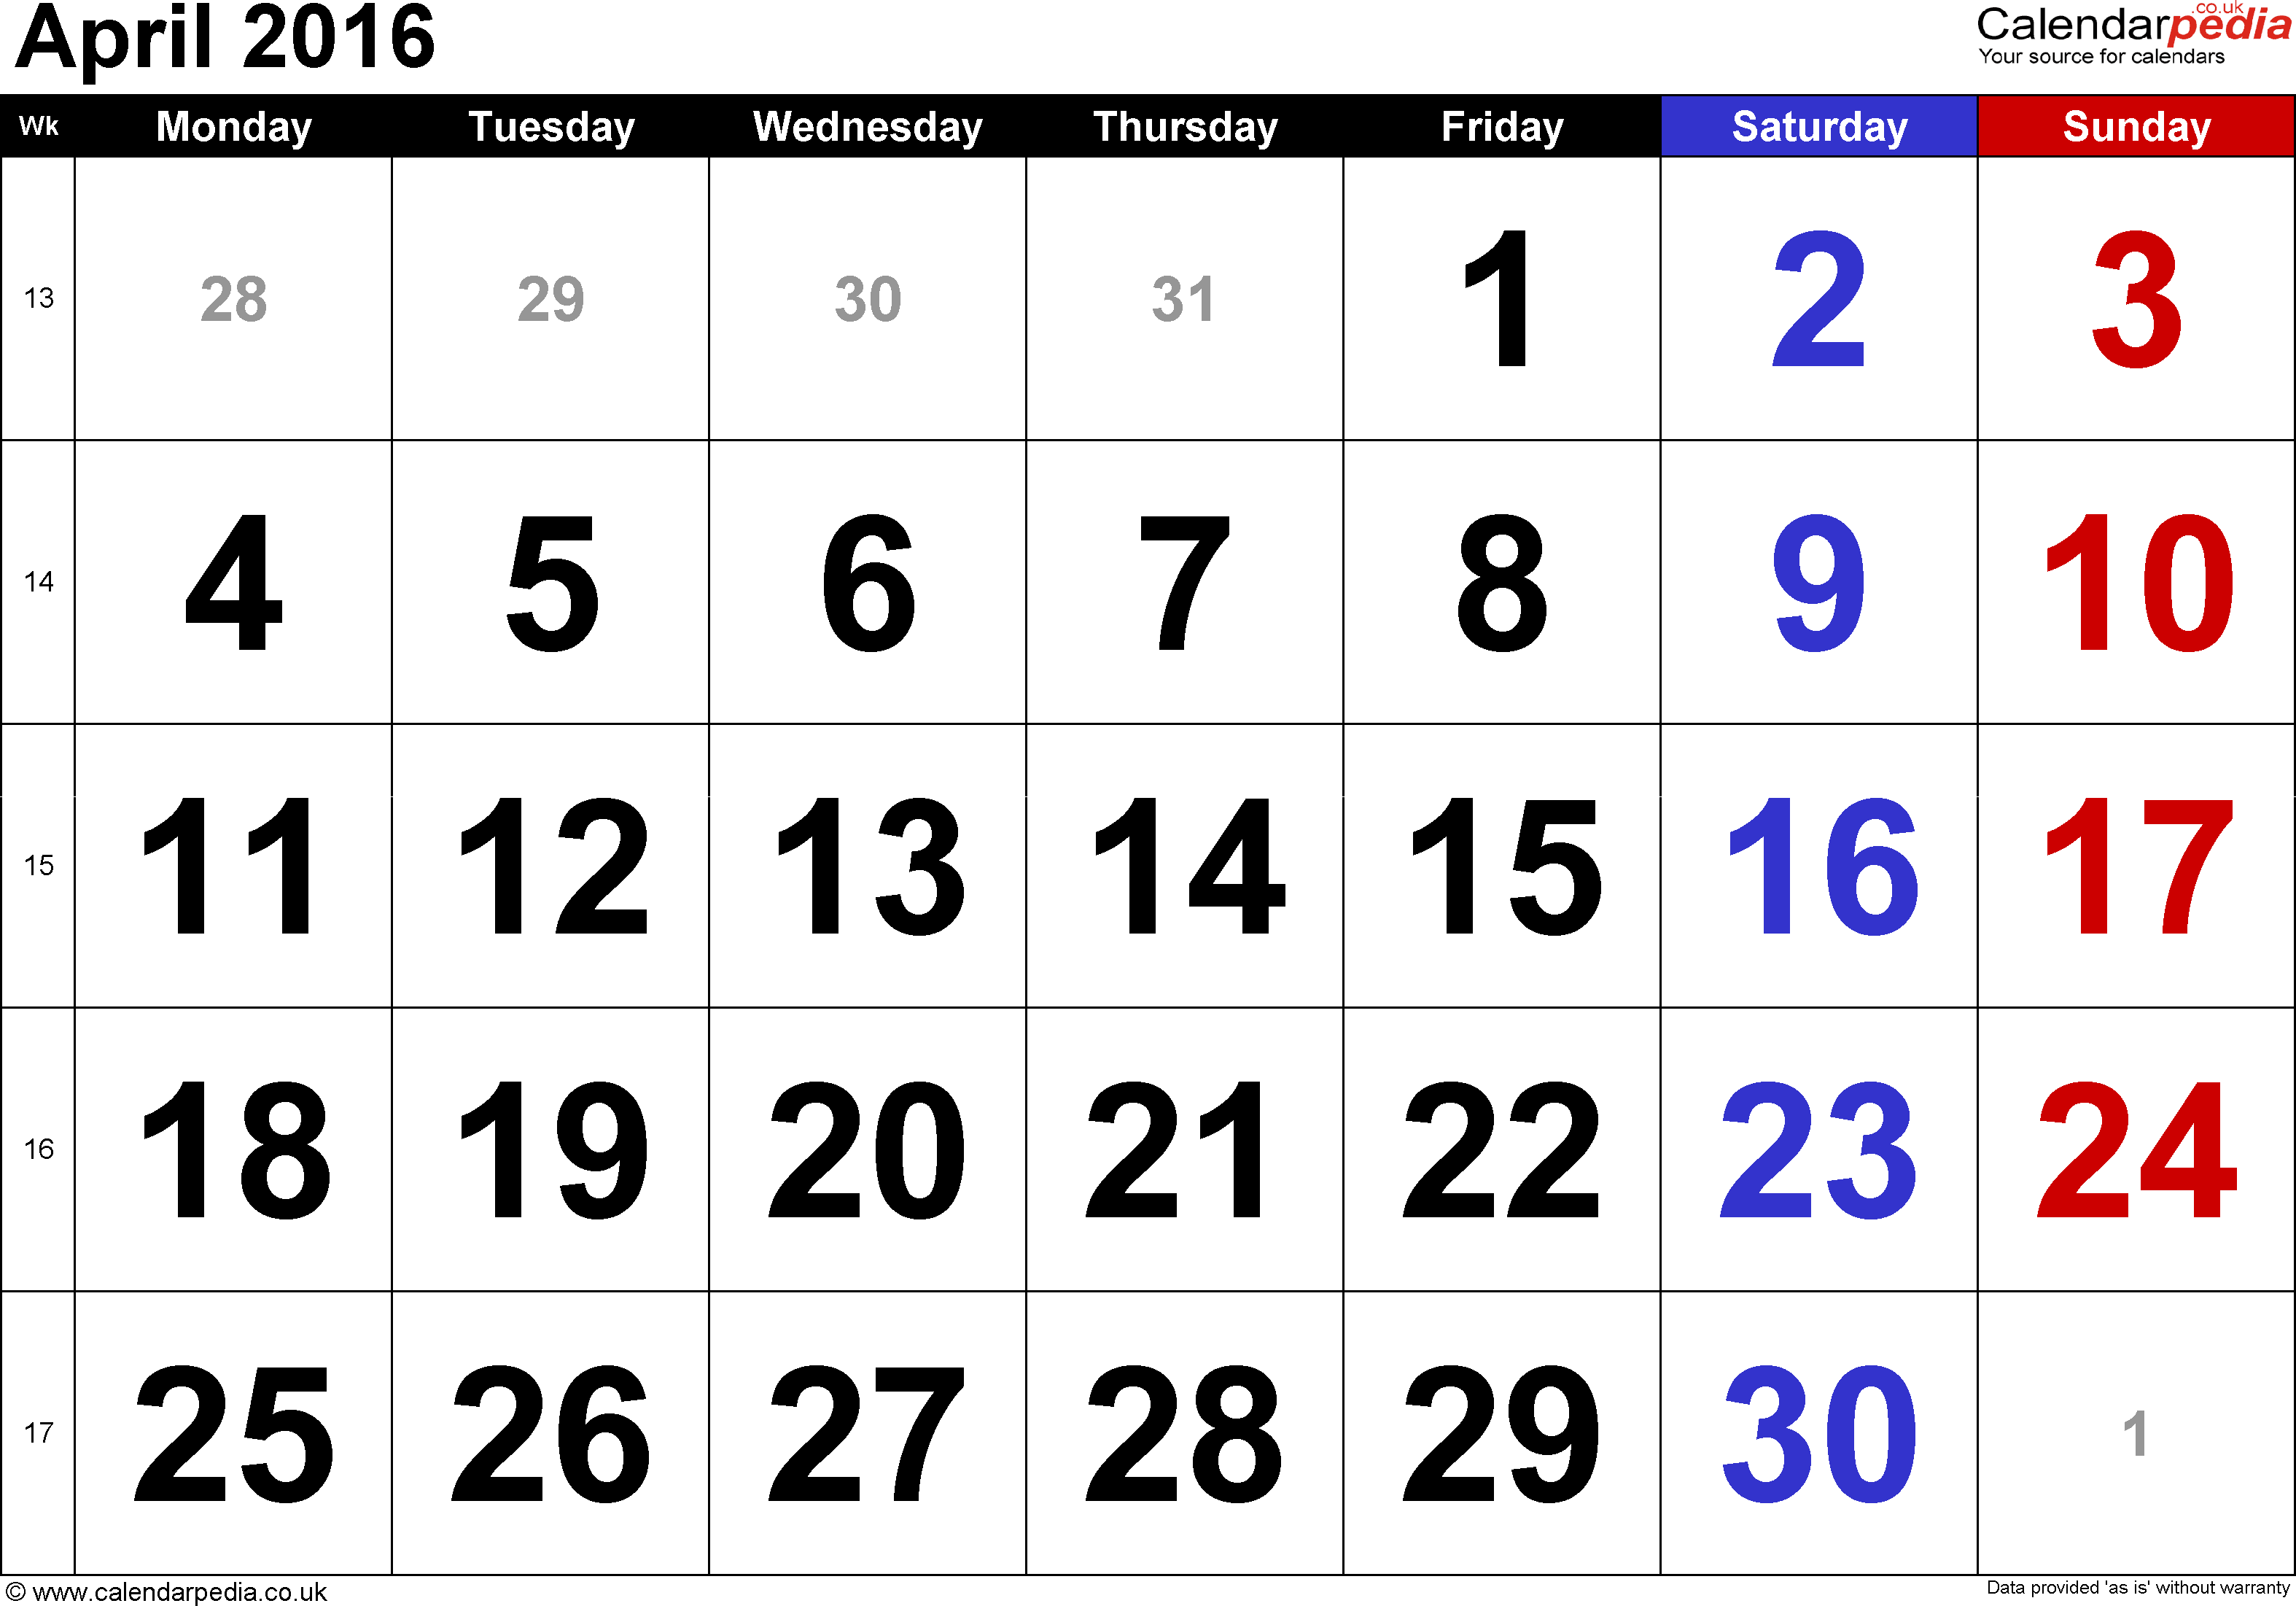 Calendar April 2016, landscape orientation, large numerals, 1 page, with UK bank holidays and week numbers